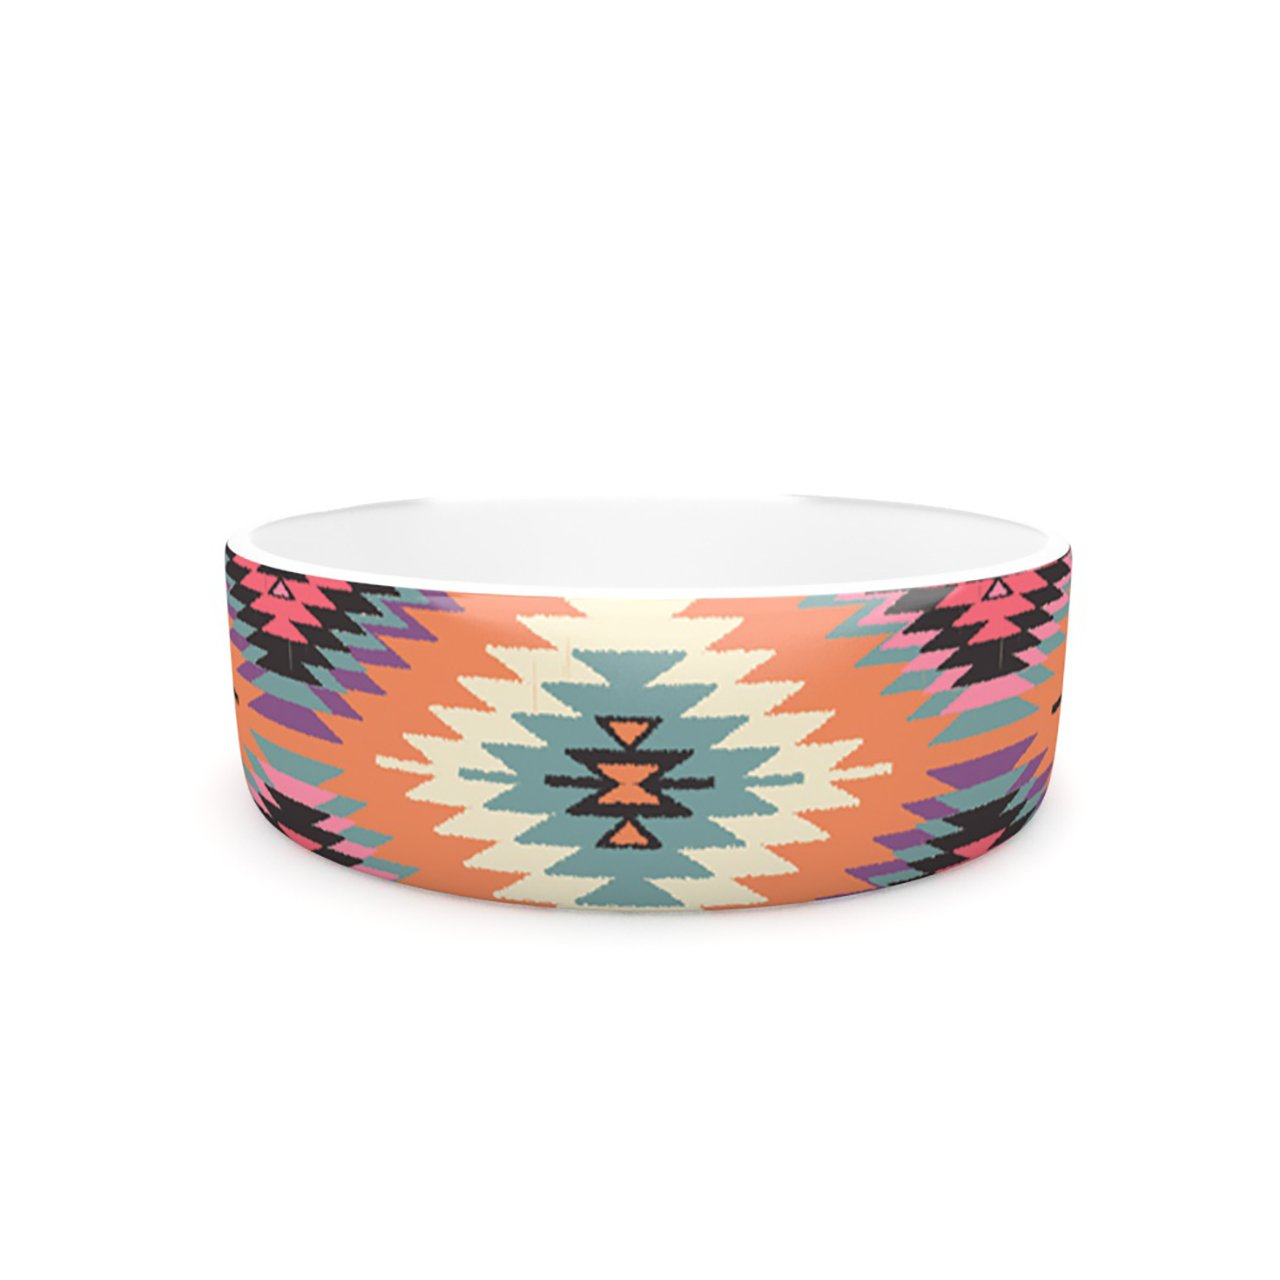 Kess InHouse Amanda Lane Navajo Dreams  Pet Bowl, 7-Inch, orange Pink